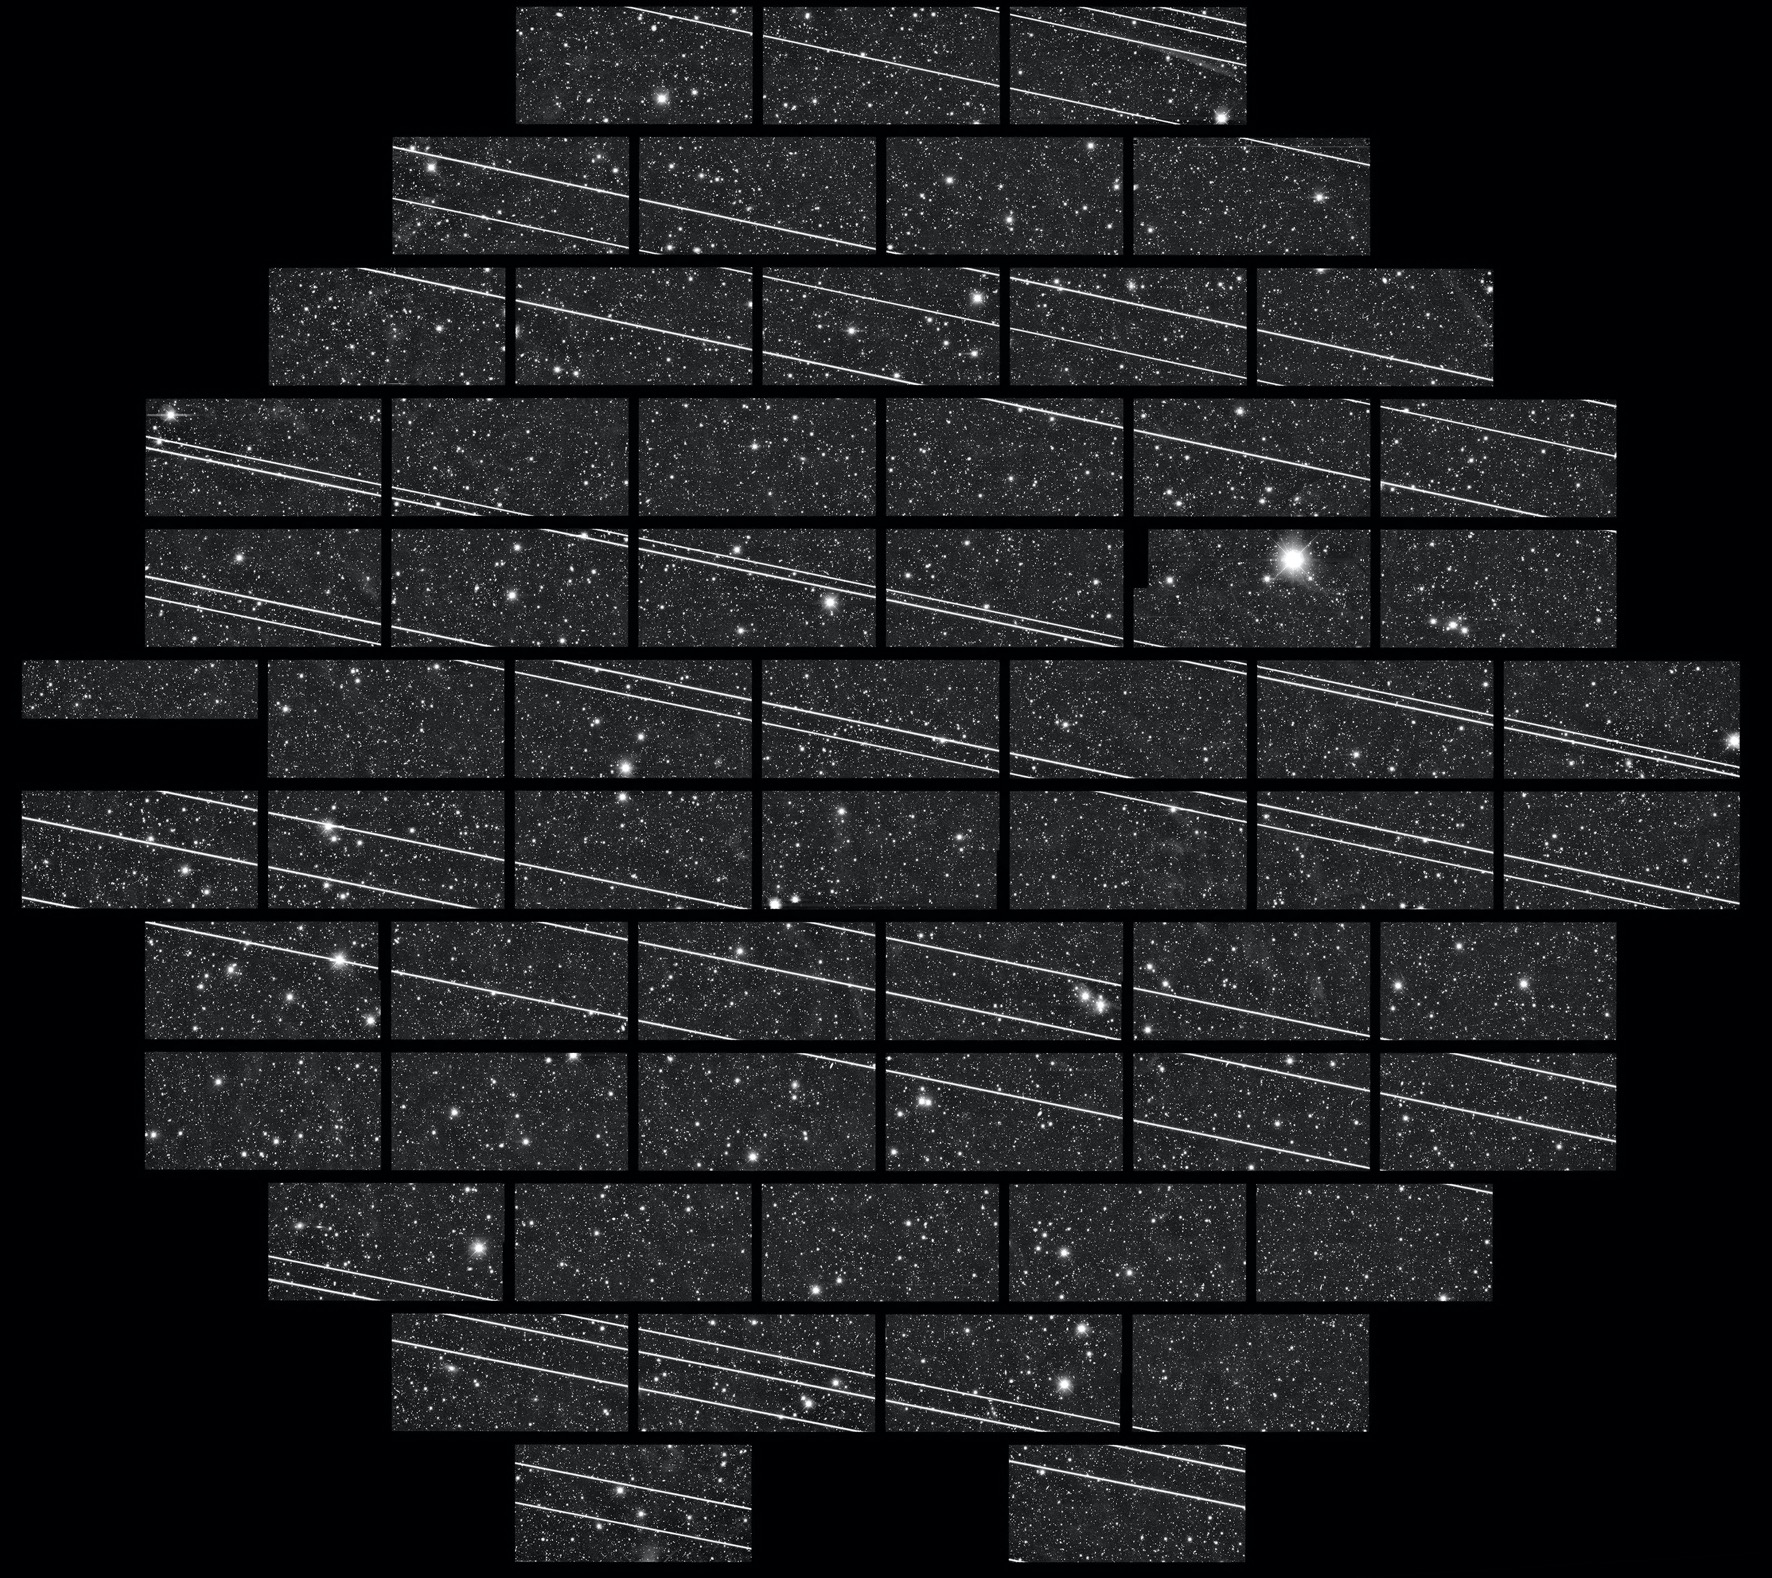 A wide-field image (2.2 degrees across) from the Dark Energy Camera on the Víctor M. Blanco 4-m telescope at the Cerro Tololo InterAmerican Observatory, taken on November 18, 2019. Several Starlink satellites crossed the field of view.